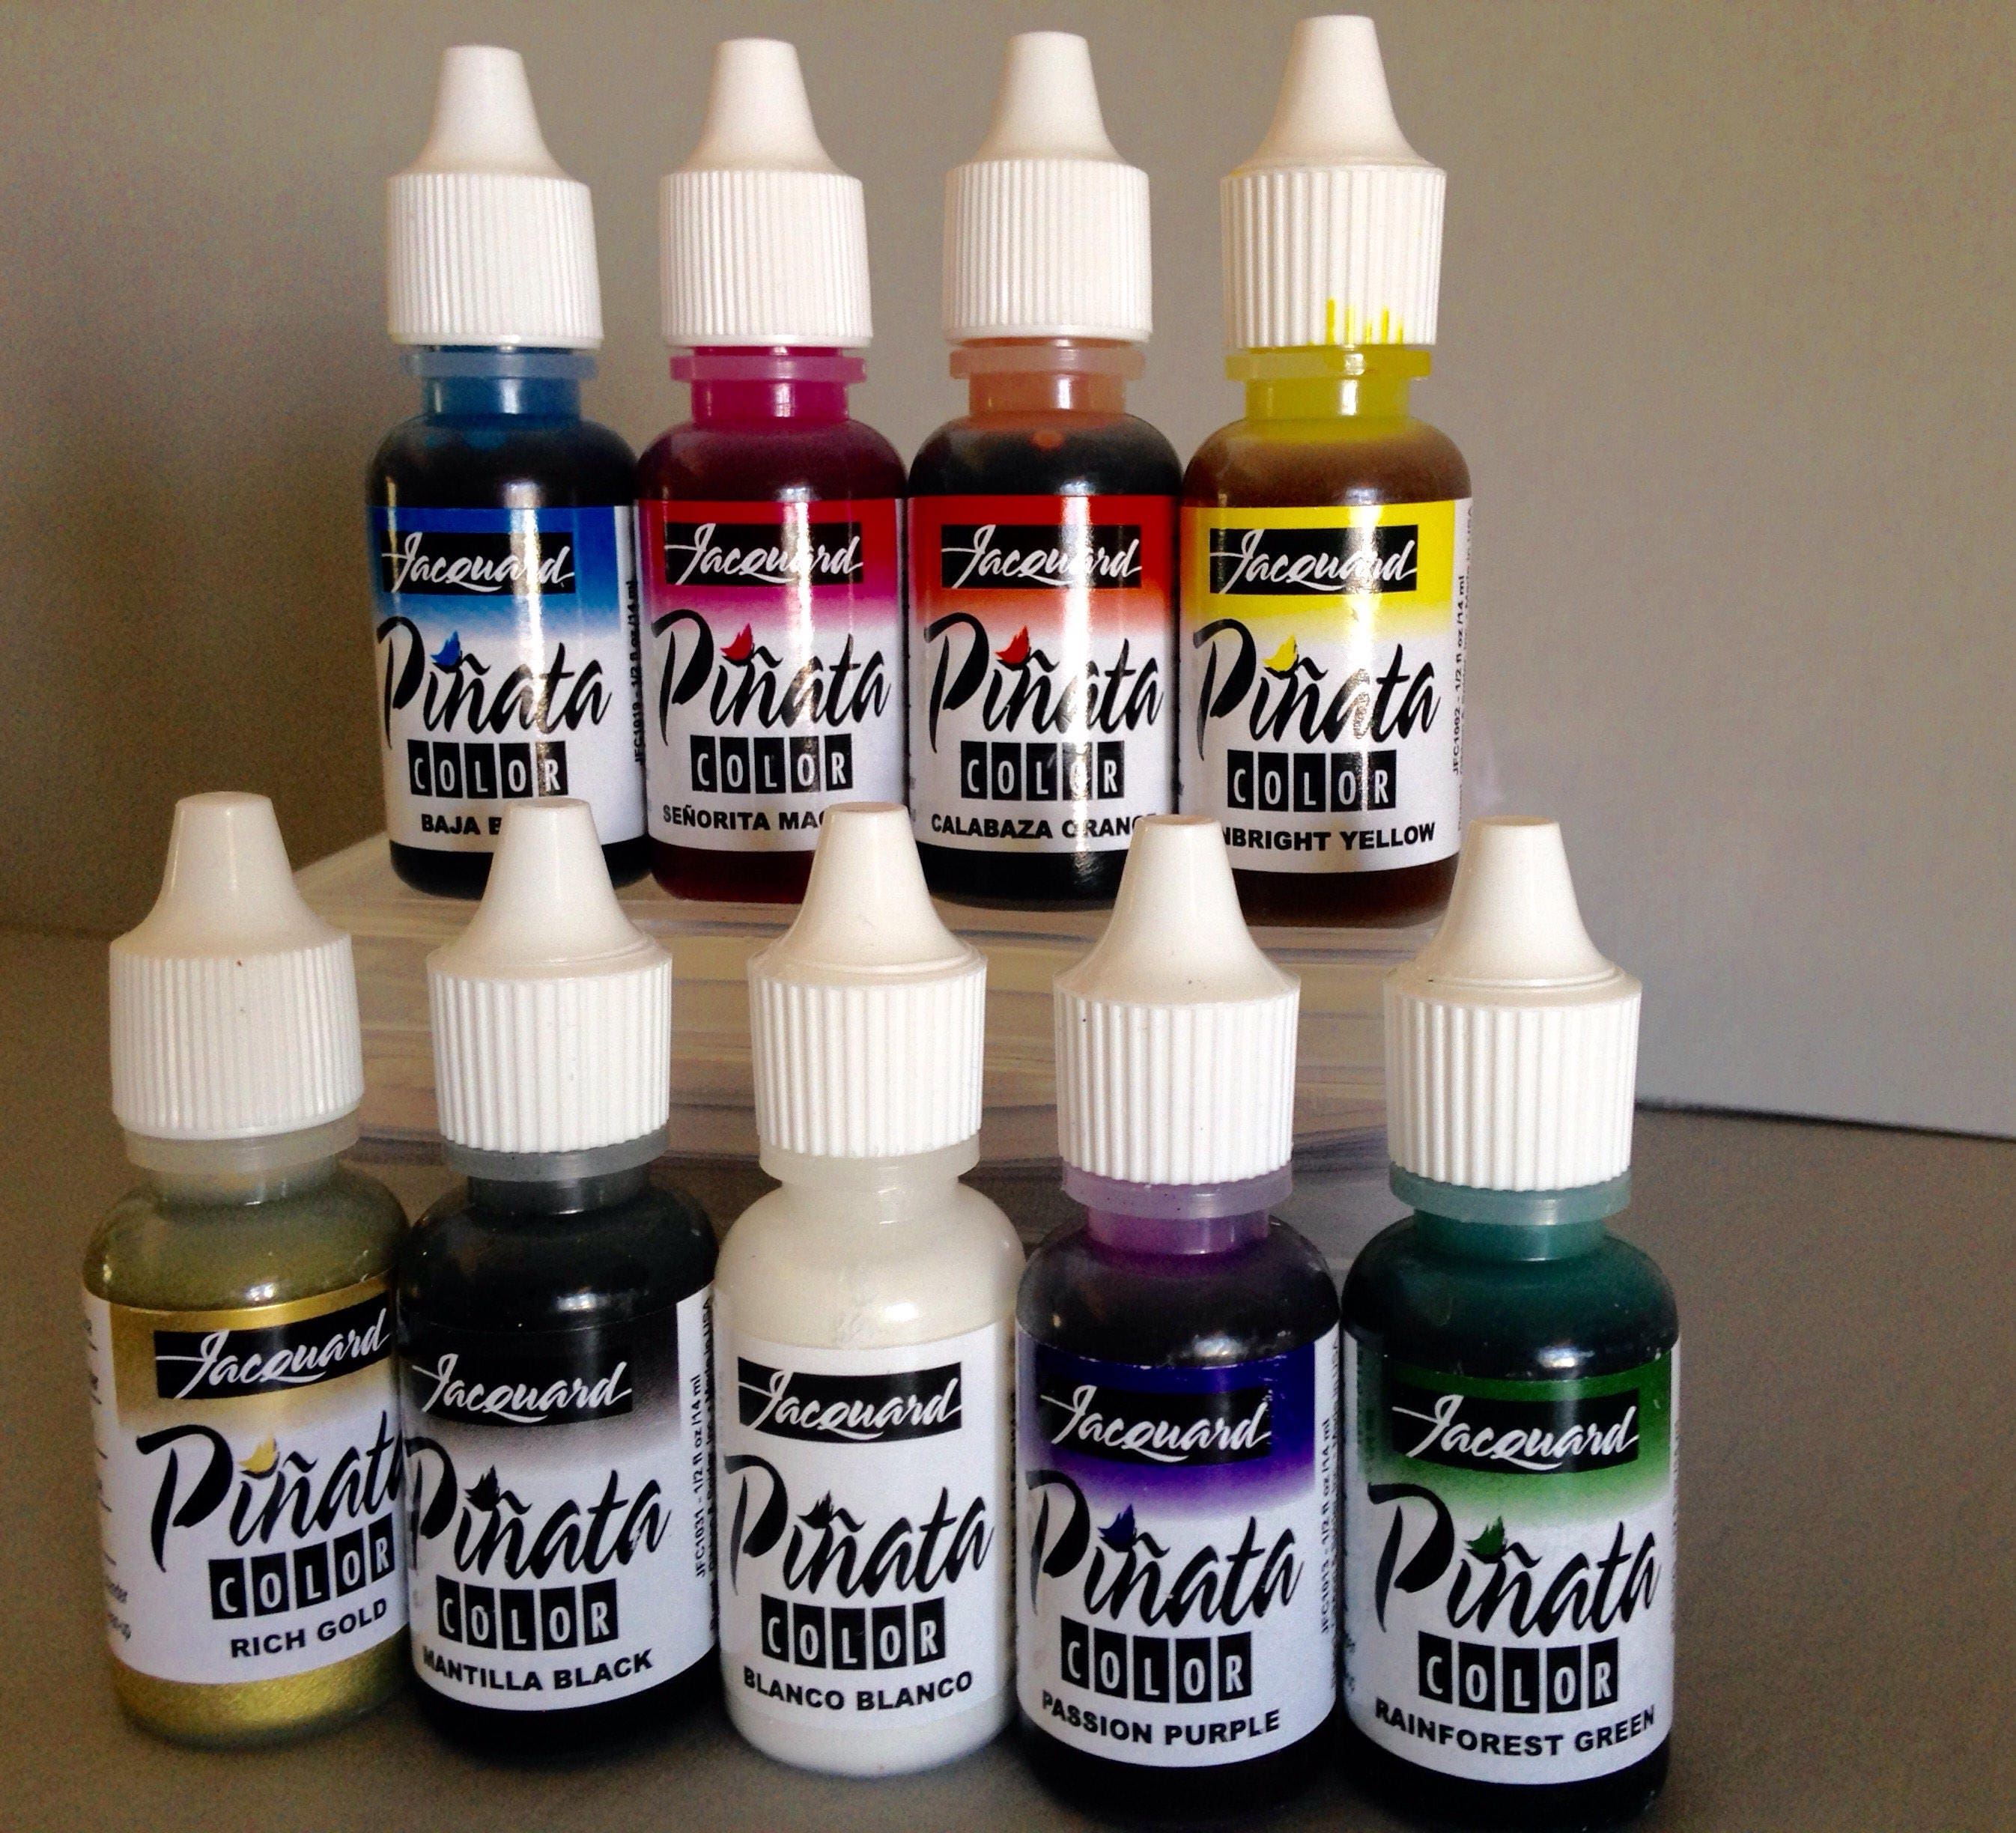 jacquard pinata alcohol ink set exciter 9 pack contains 9 etsy